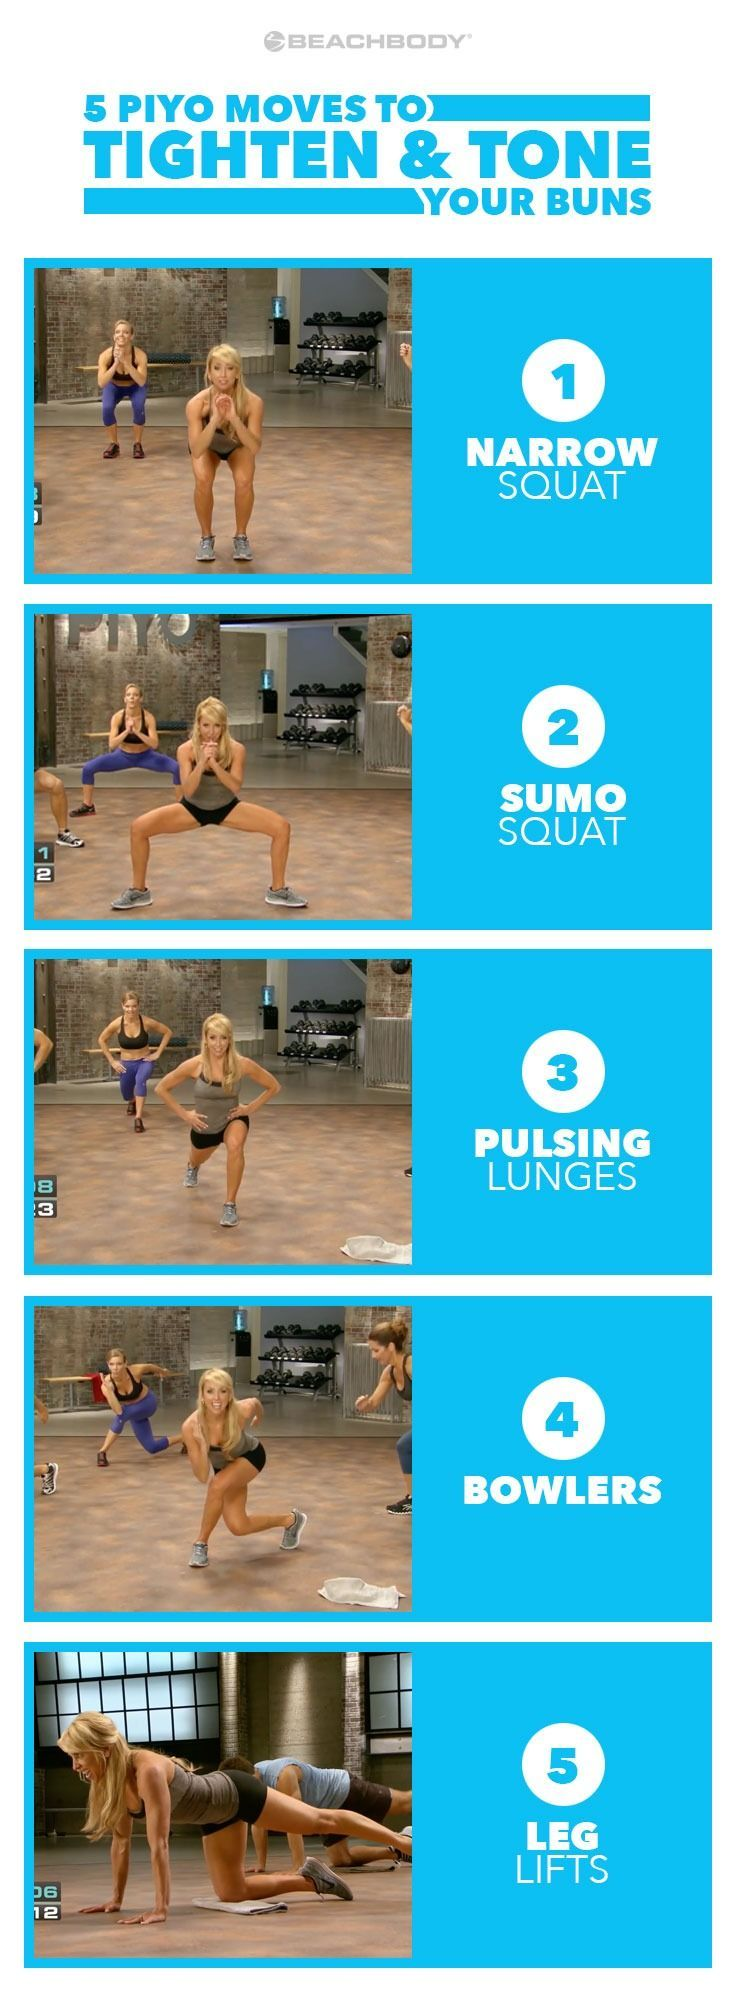 This is the butt workout you've been looking for. These 5 easy moves will tighten your booty in no time. Read on to find out why it works. butt workouts // PiYo // Chalene Johnson // toned butt // best butt workout // home butt workouts // strong glutes exercises // Beachbody // Beachbody Blog